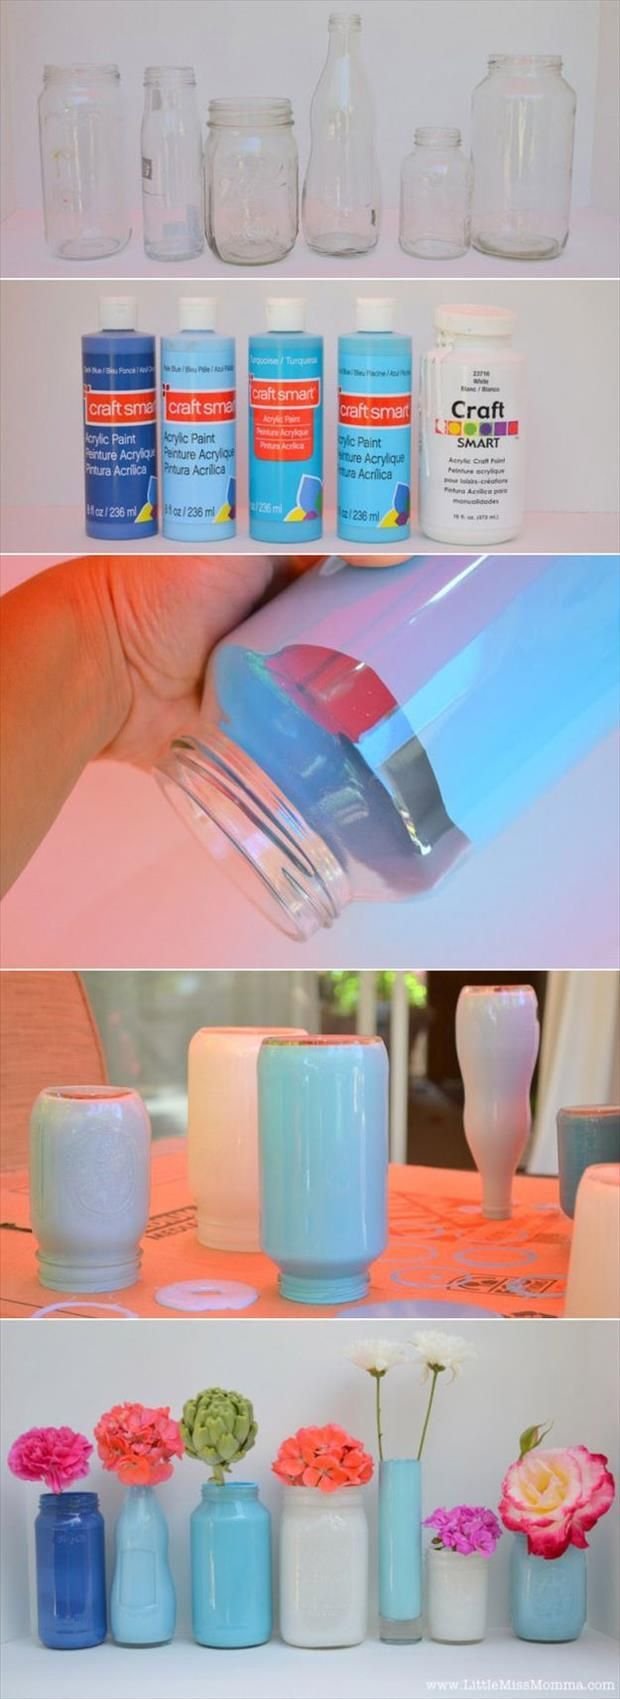 Turn any glass bottle or jar into a milky glass vase for flowers. Or a chic container to organize anything!